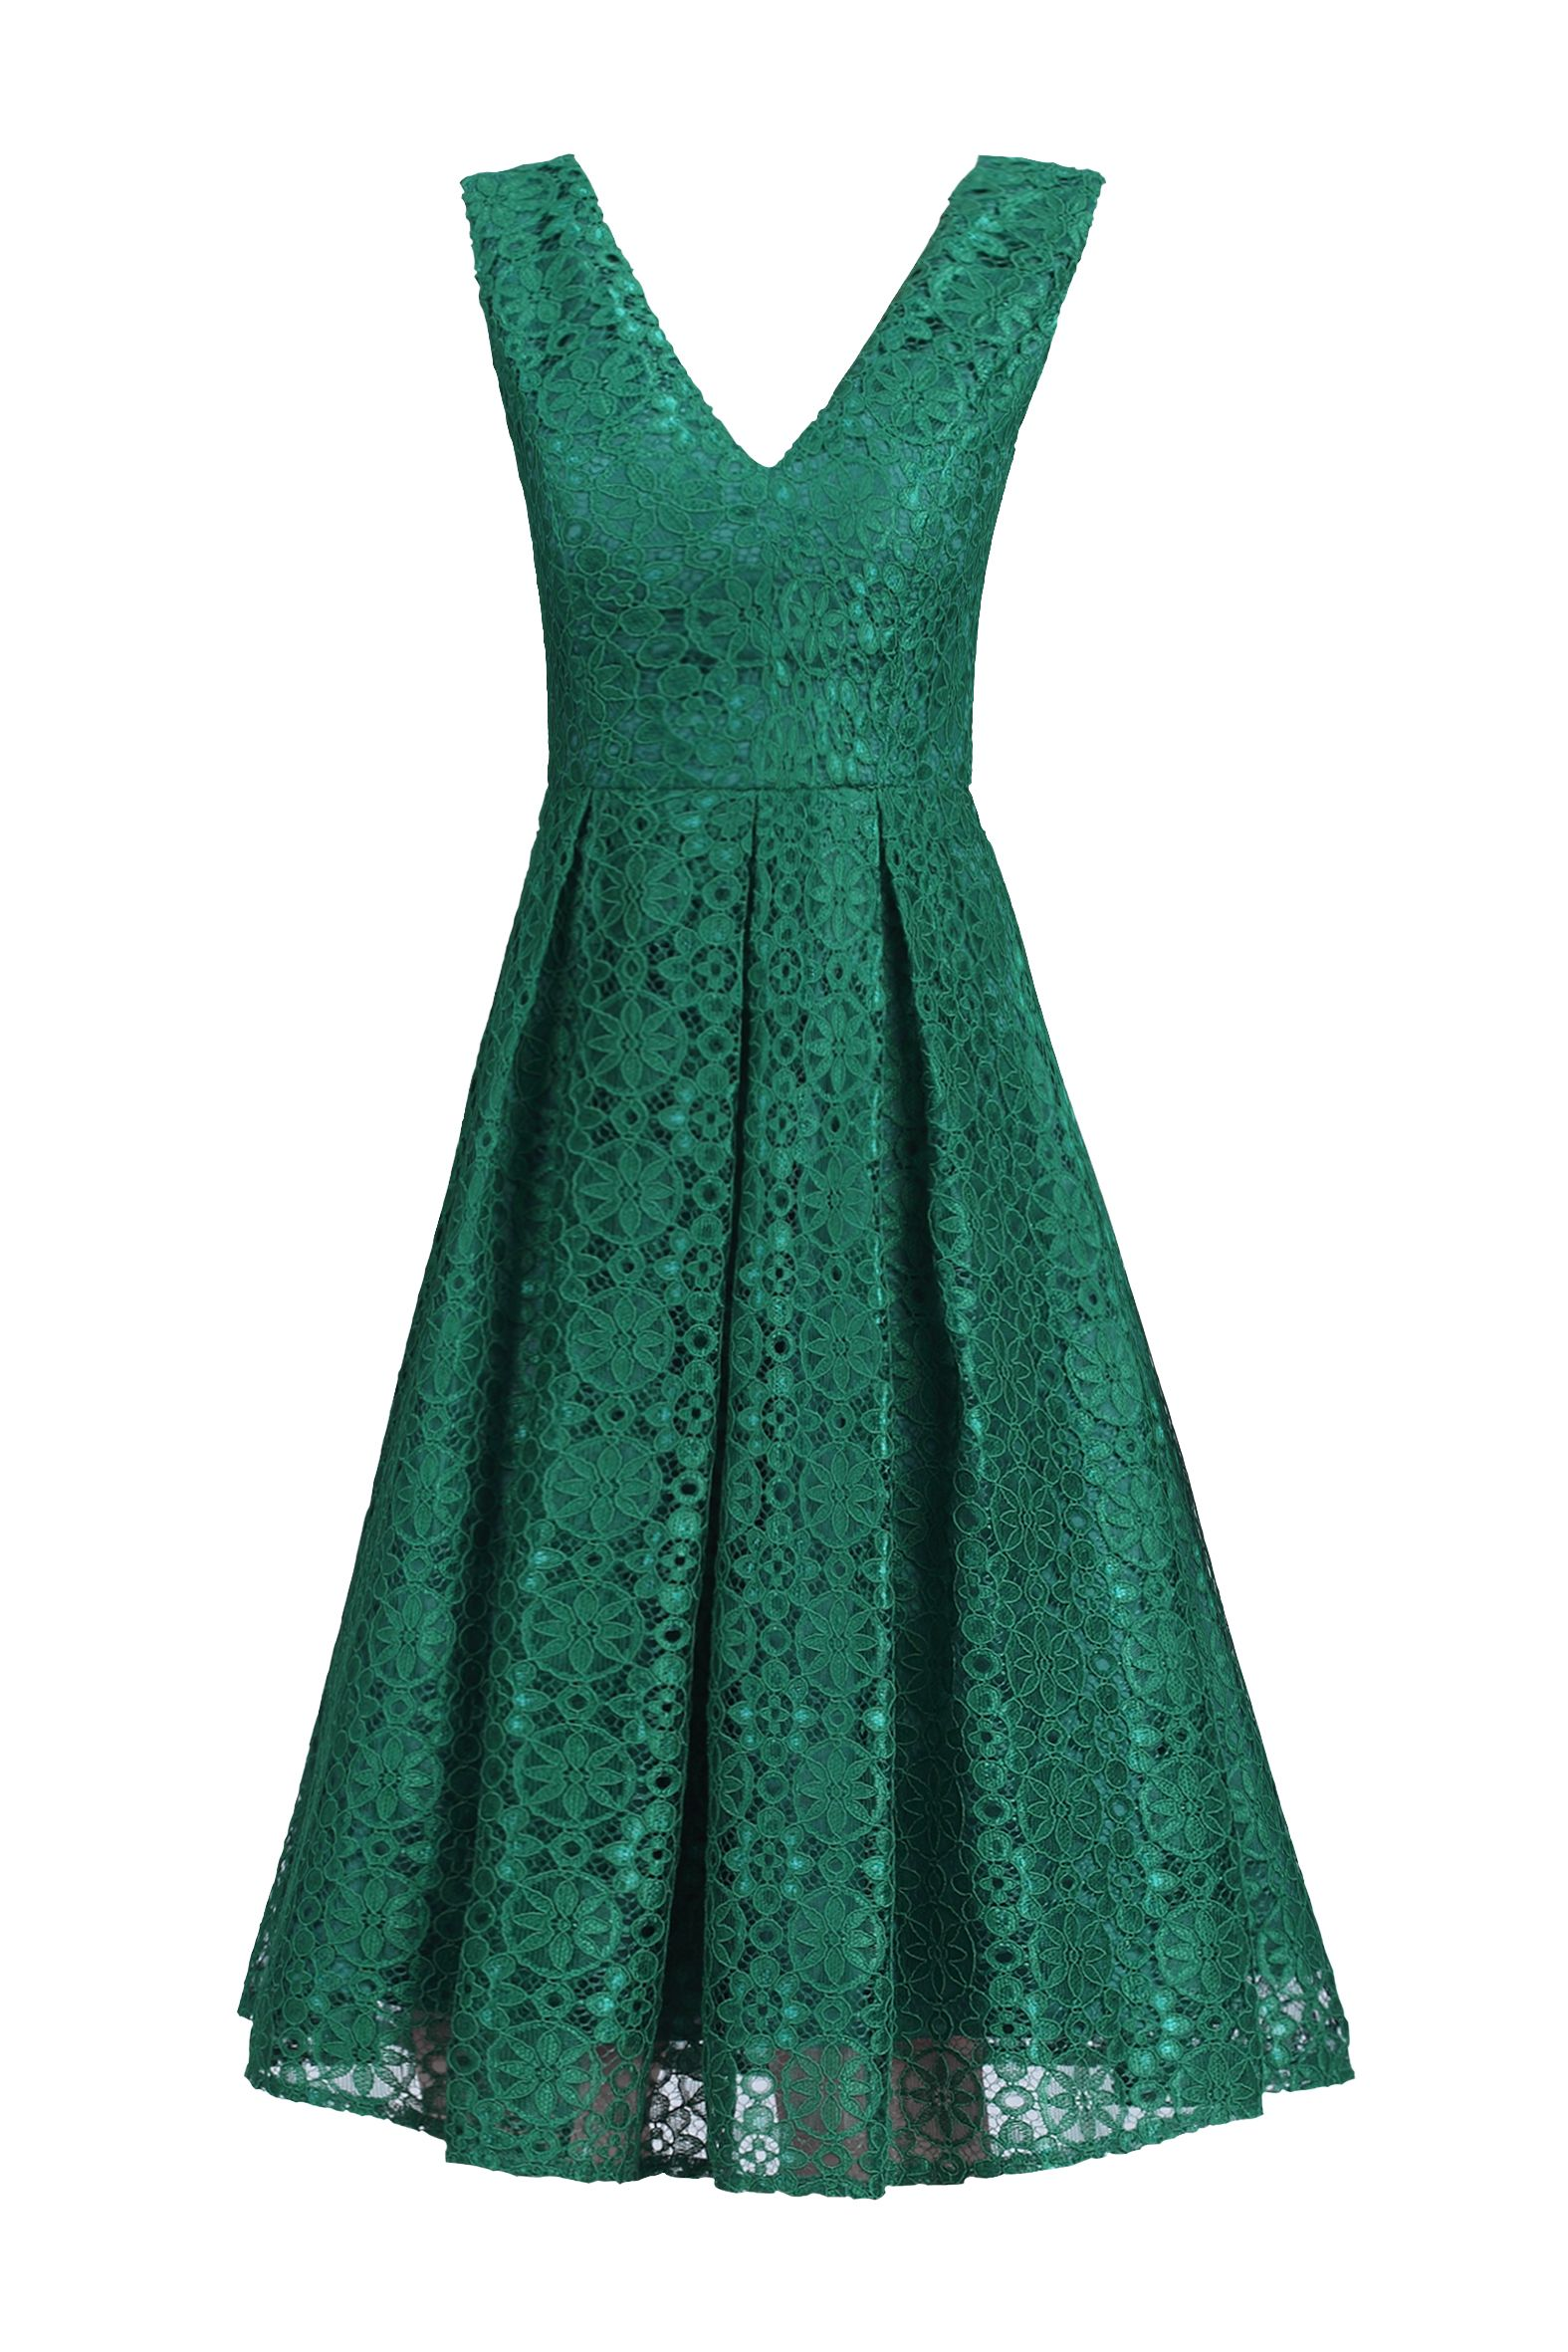 Jolie Moi 50s Pleated Lace Dress, Green